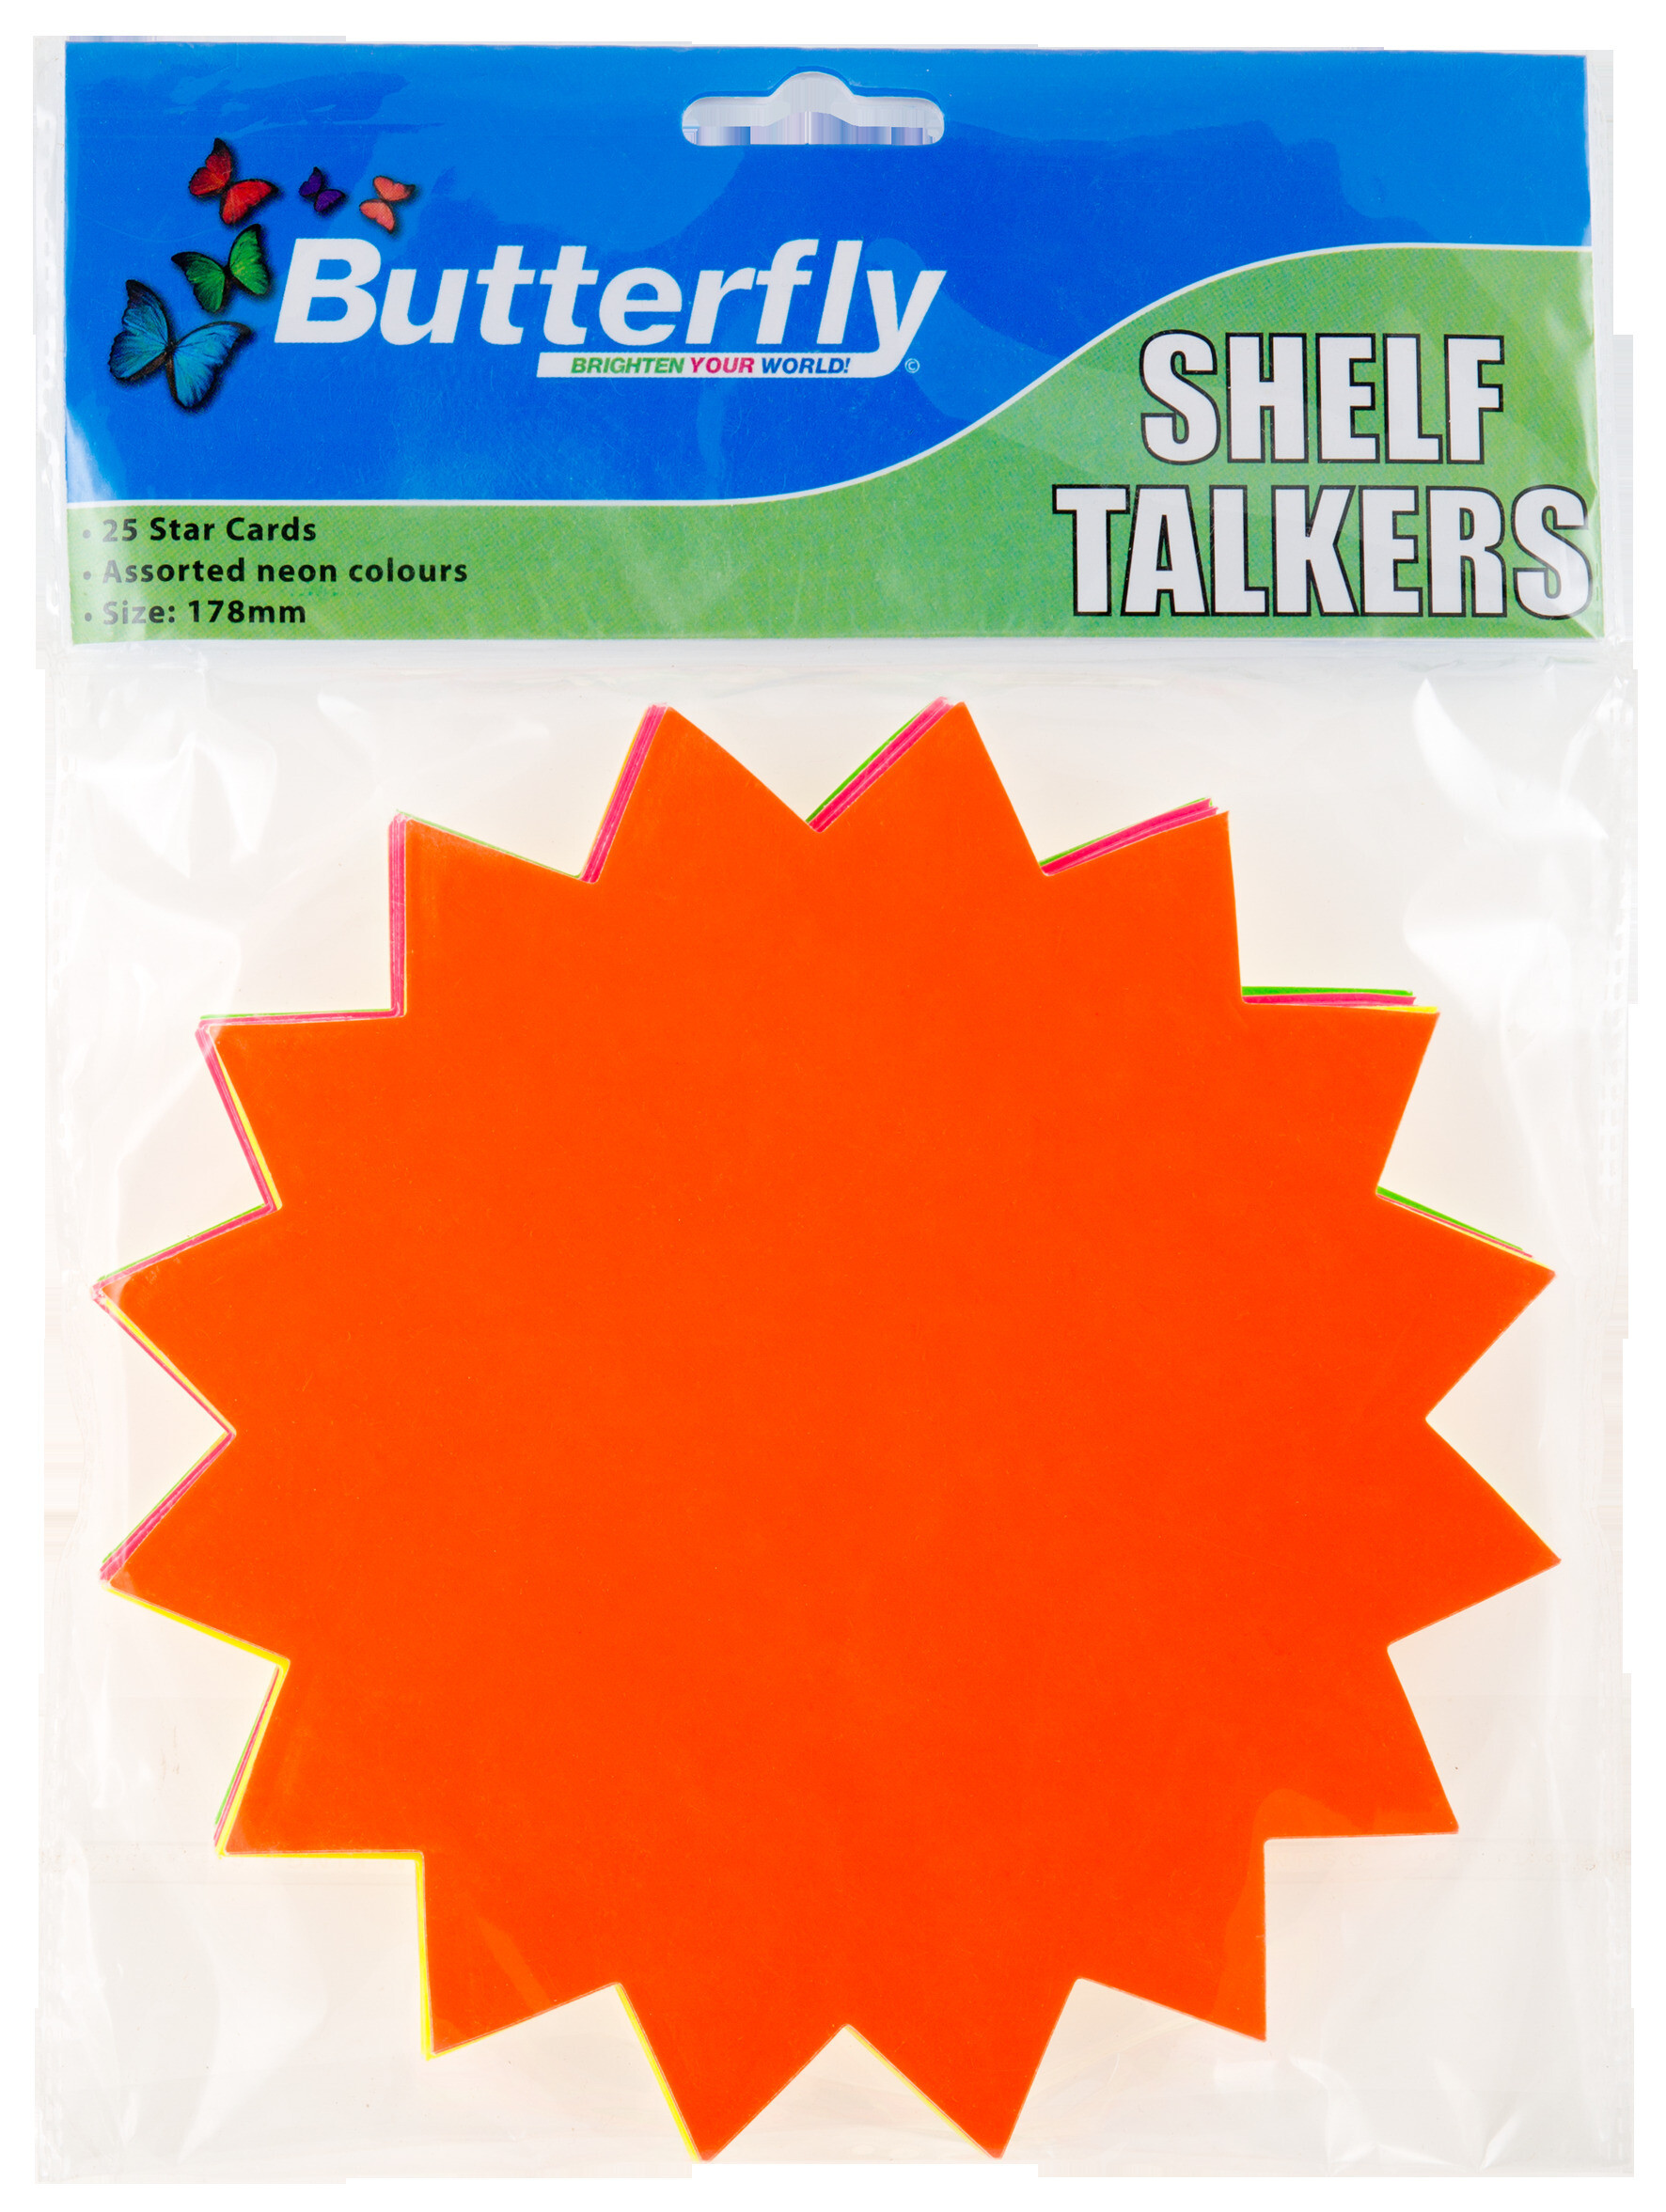 Shelf Talkers - Cut Out Stars 25 (178mm)